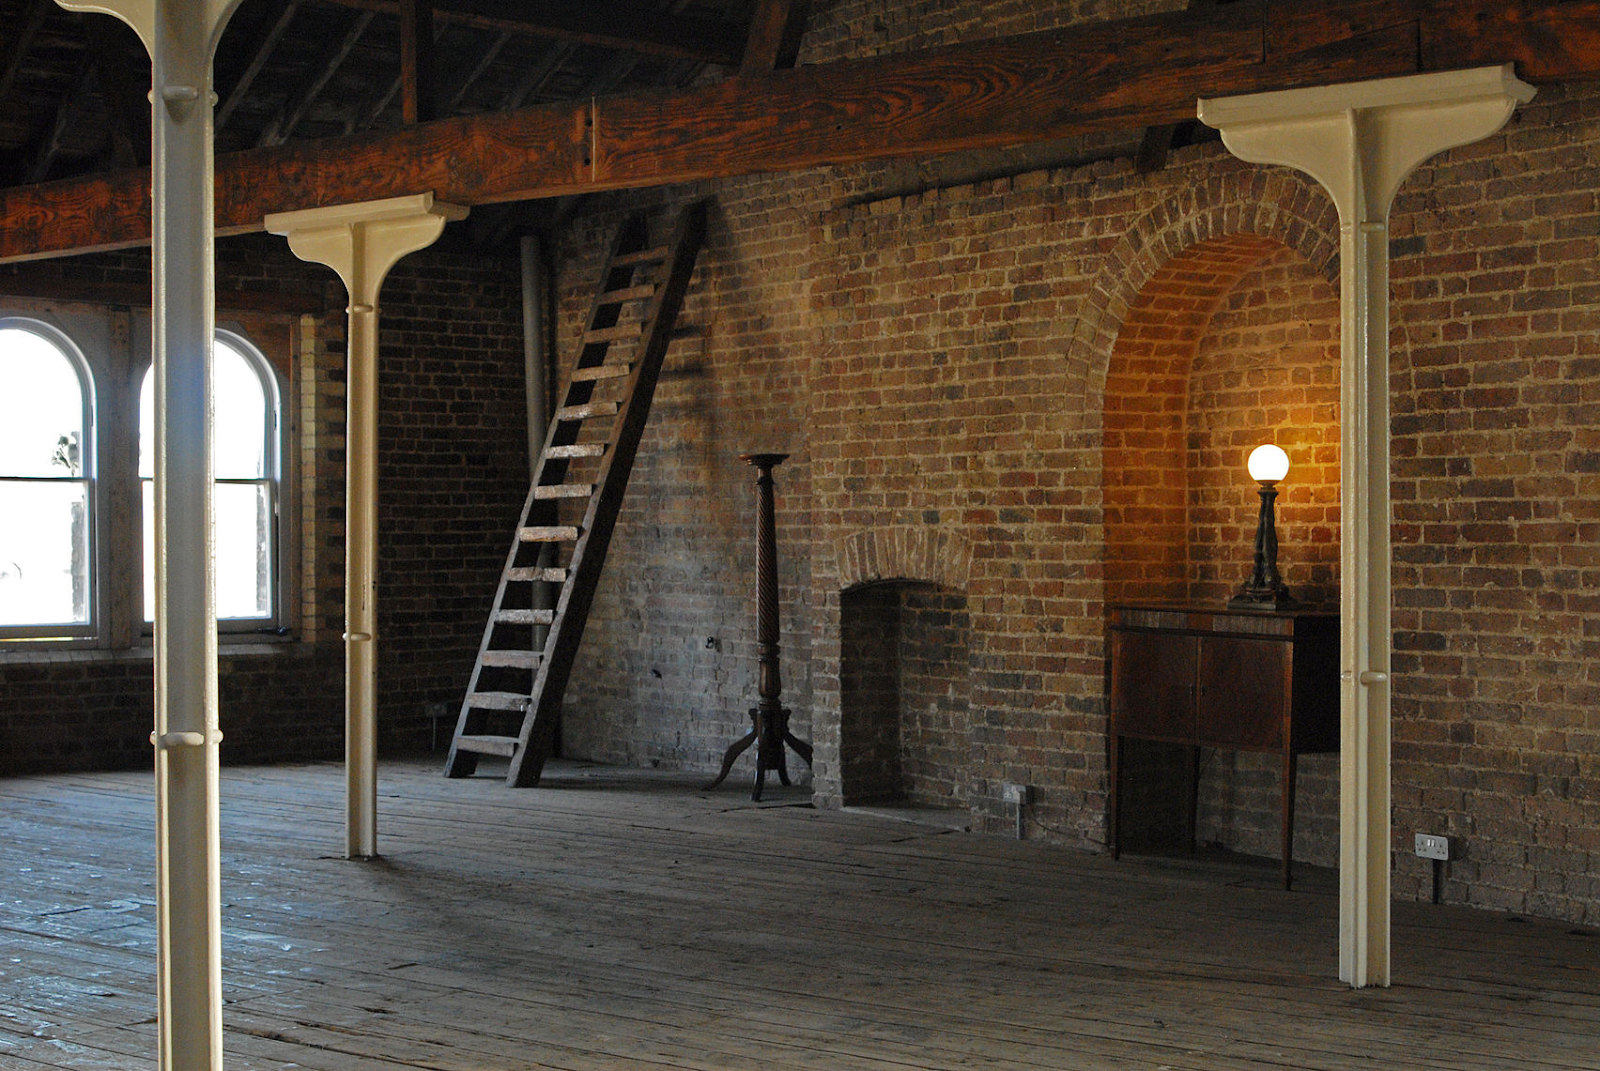 a large event space at menier space with exposed brick walls and a lamp at Menier Spaces